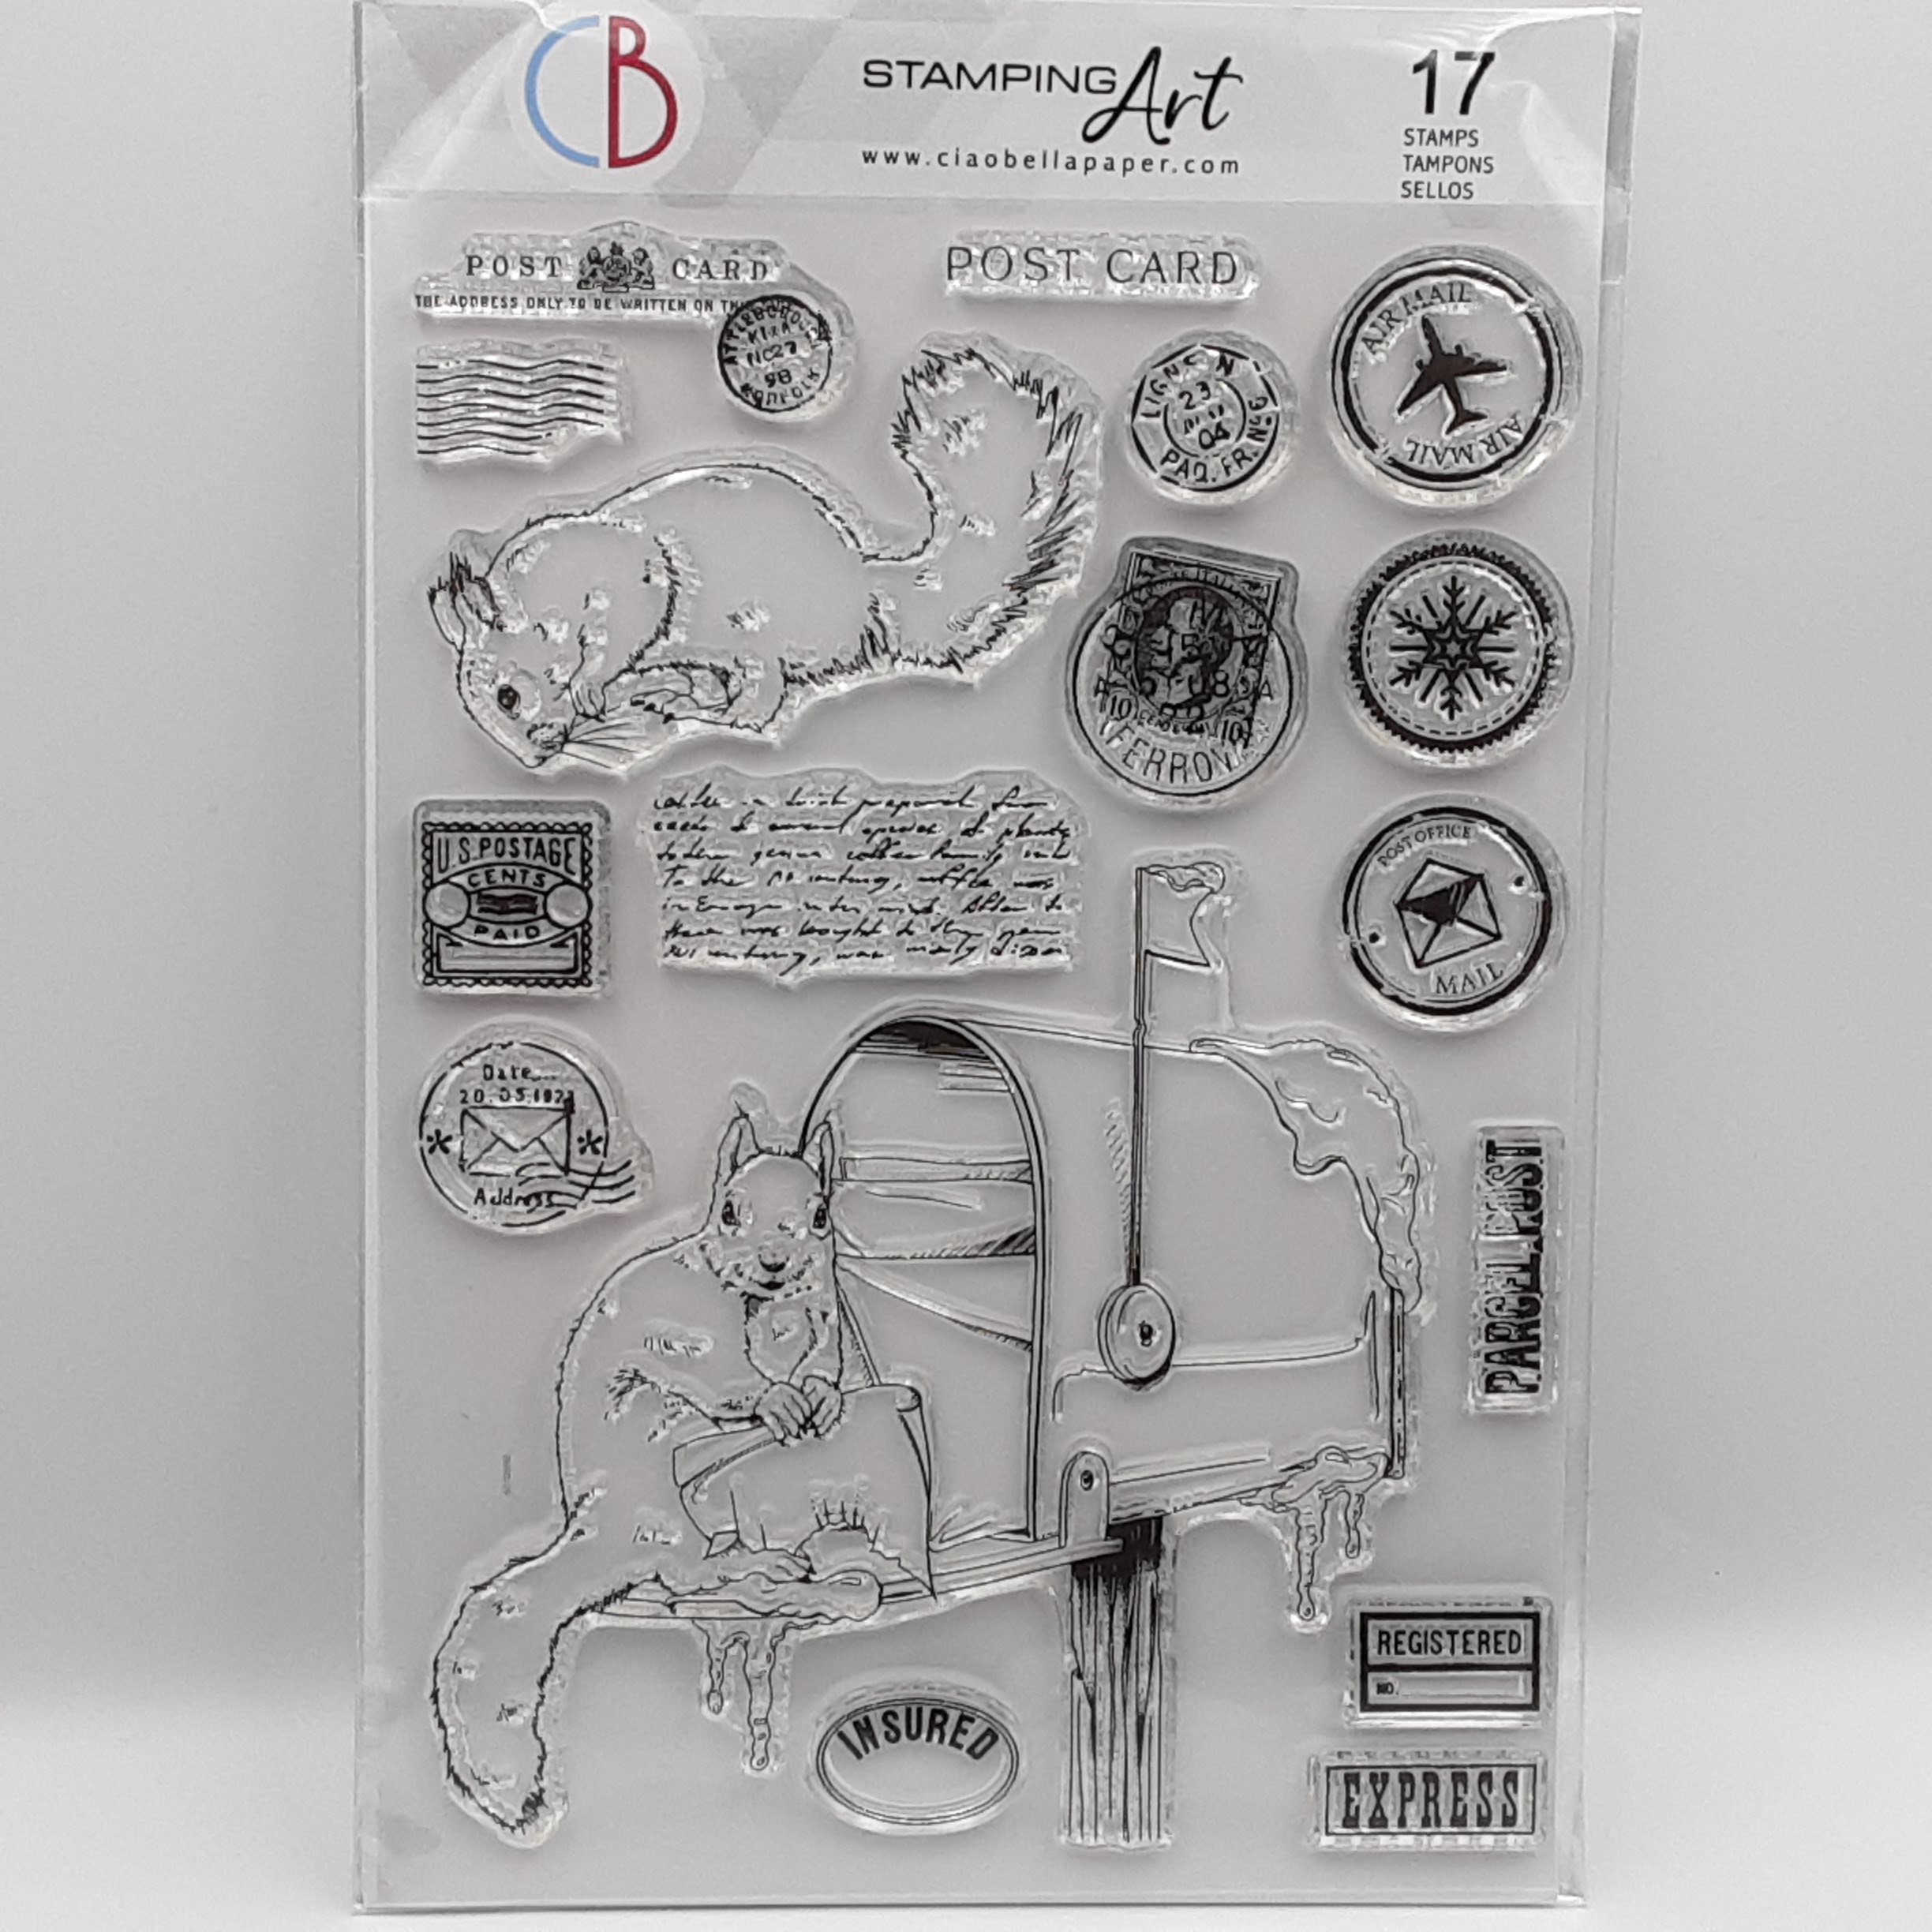 Mail box clear stamp A5